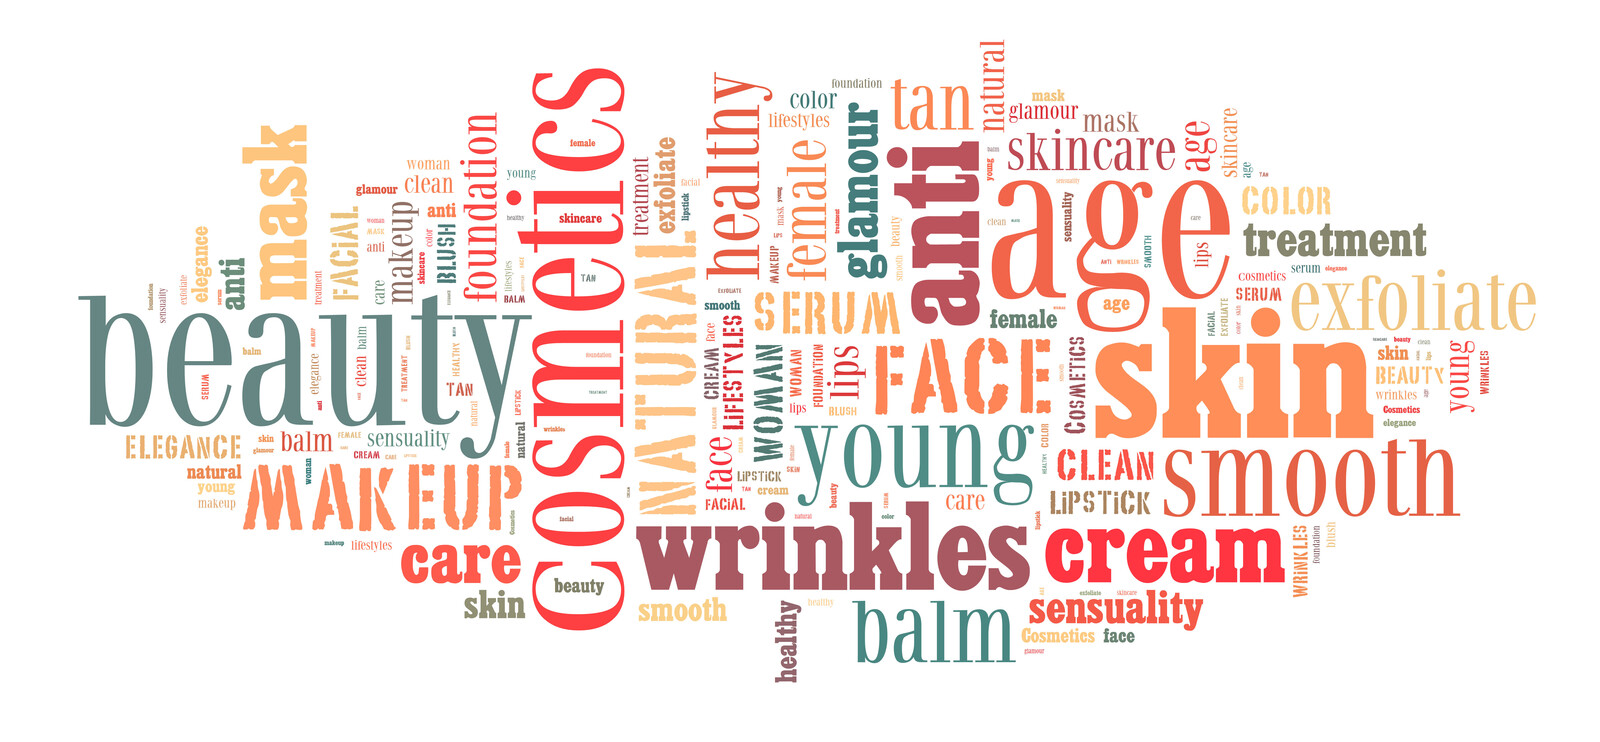 A multi colored word cloud for cosmetics and anti-aging with words like: smooth, cream, wrinkles, beauty